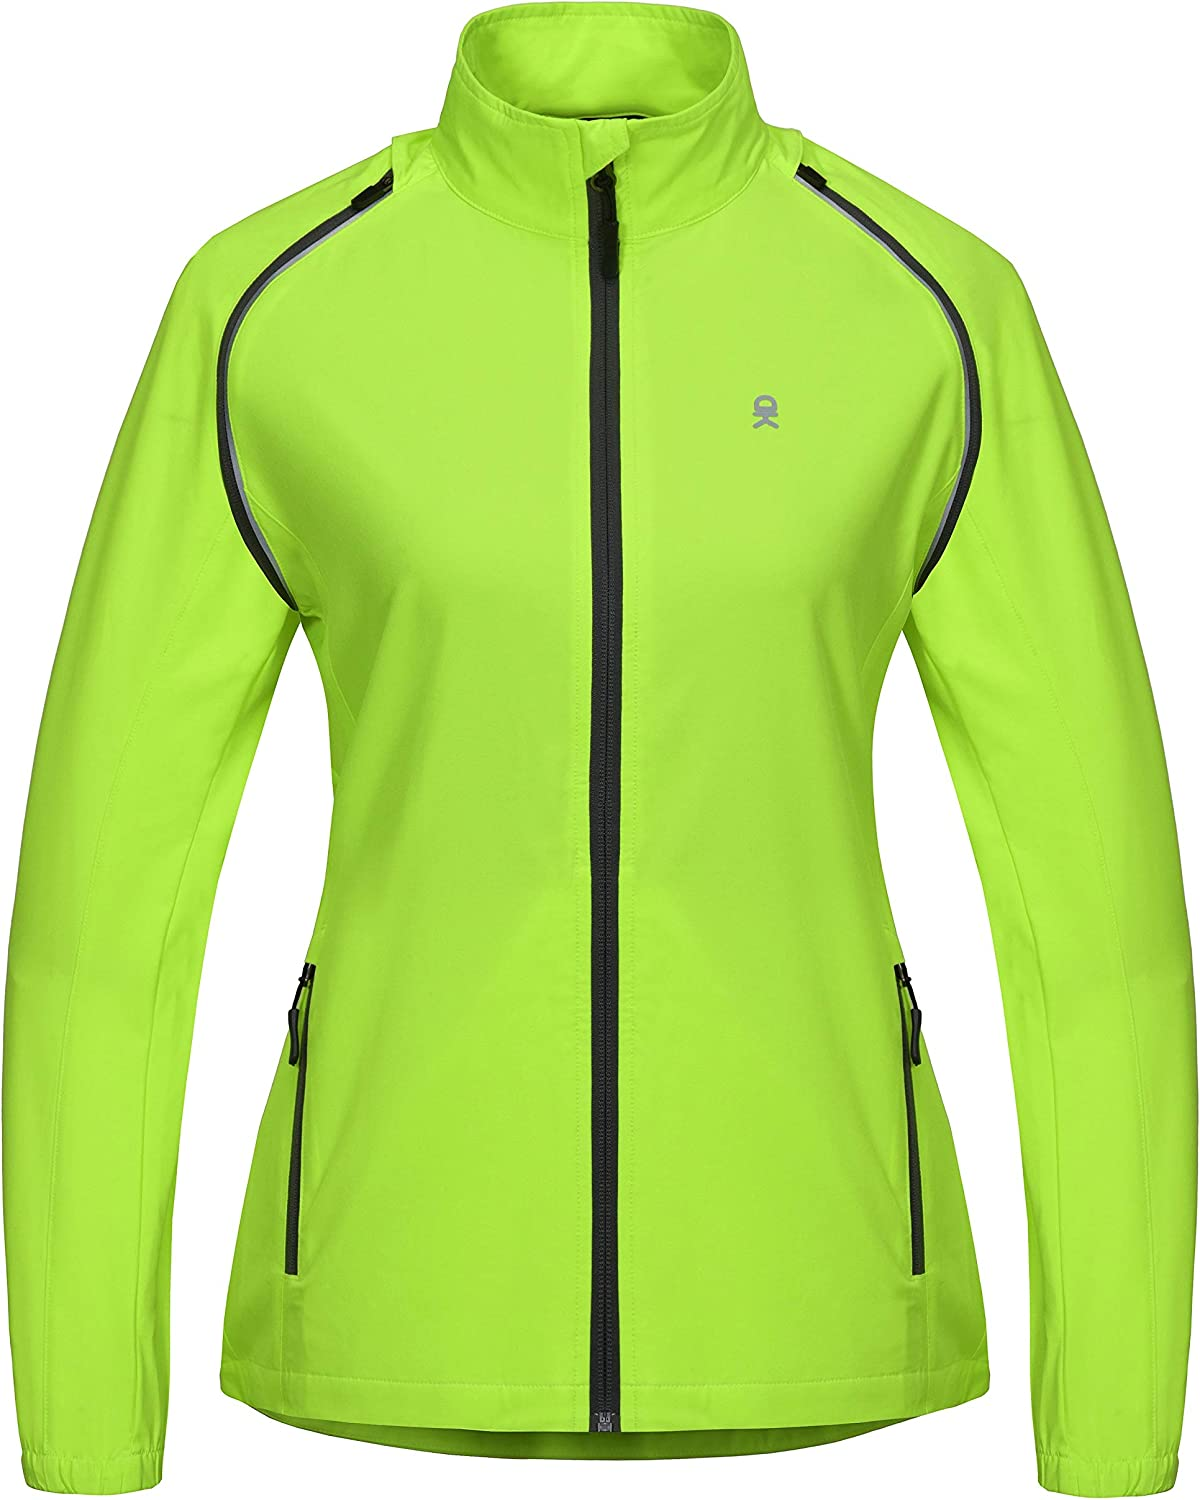 Convertible UPF 50 Little Donkey Andy Womens Quick-Dry Running Jacket Cycling Jacket Windbreaker with Removable Sleeves